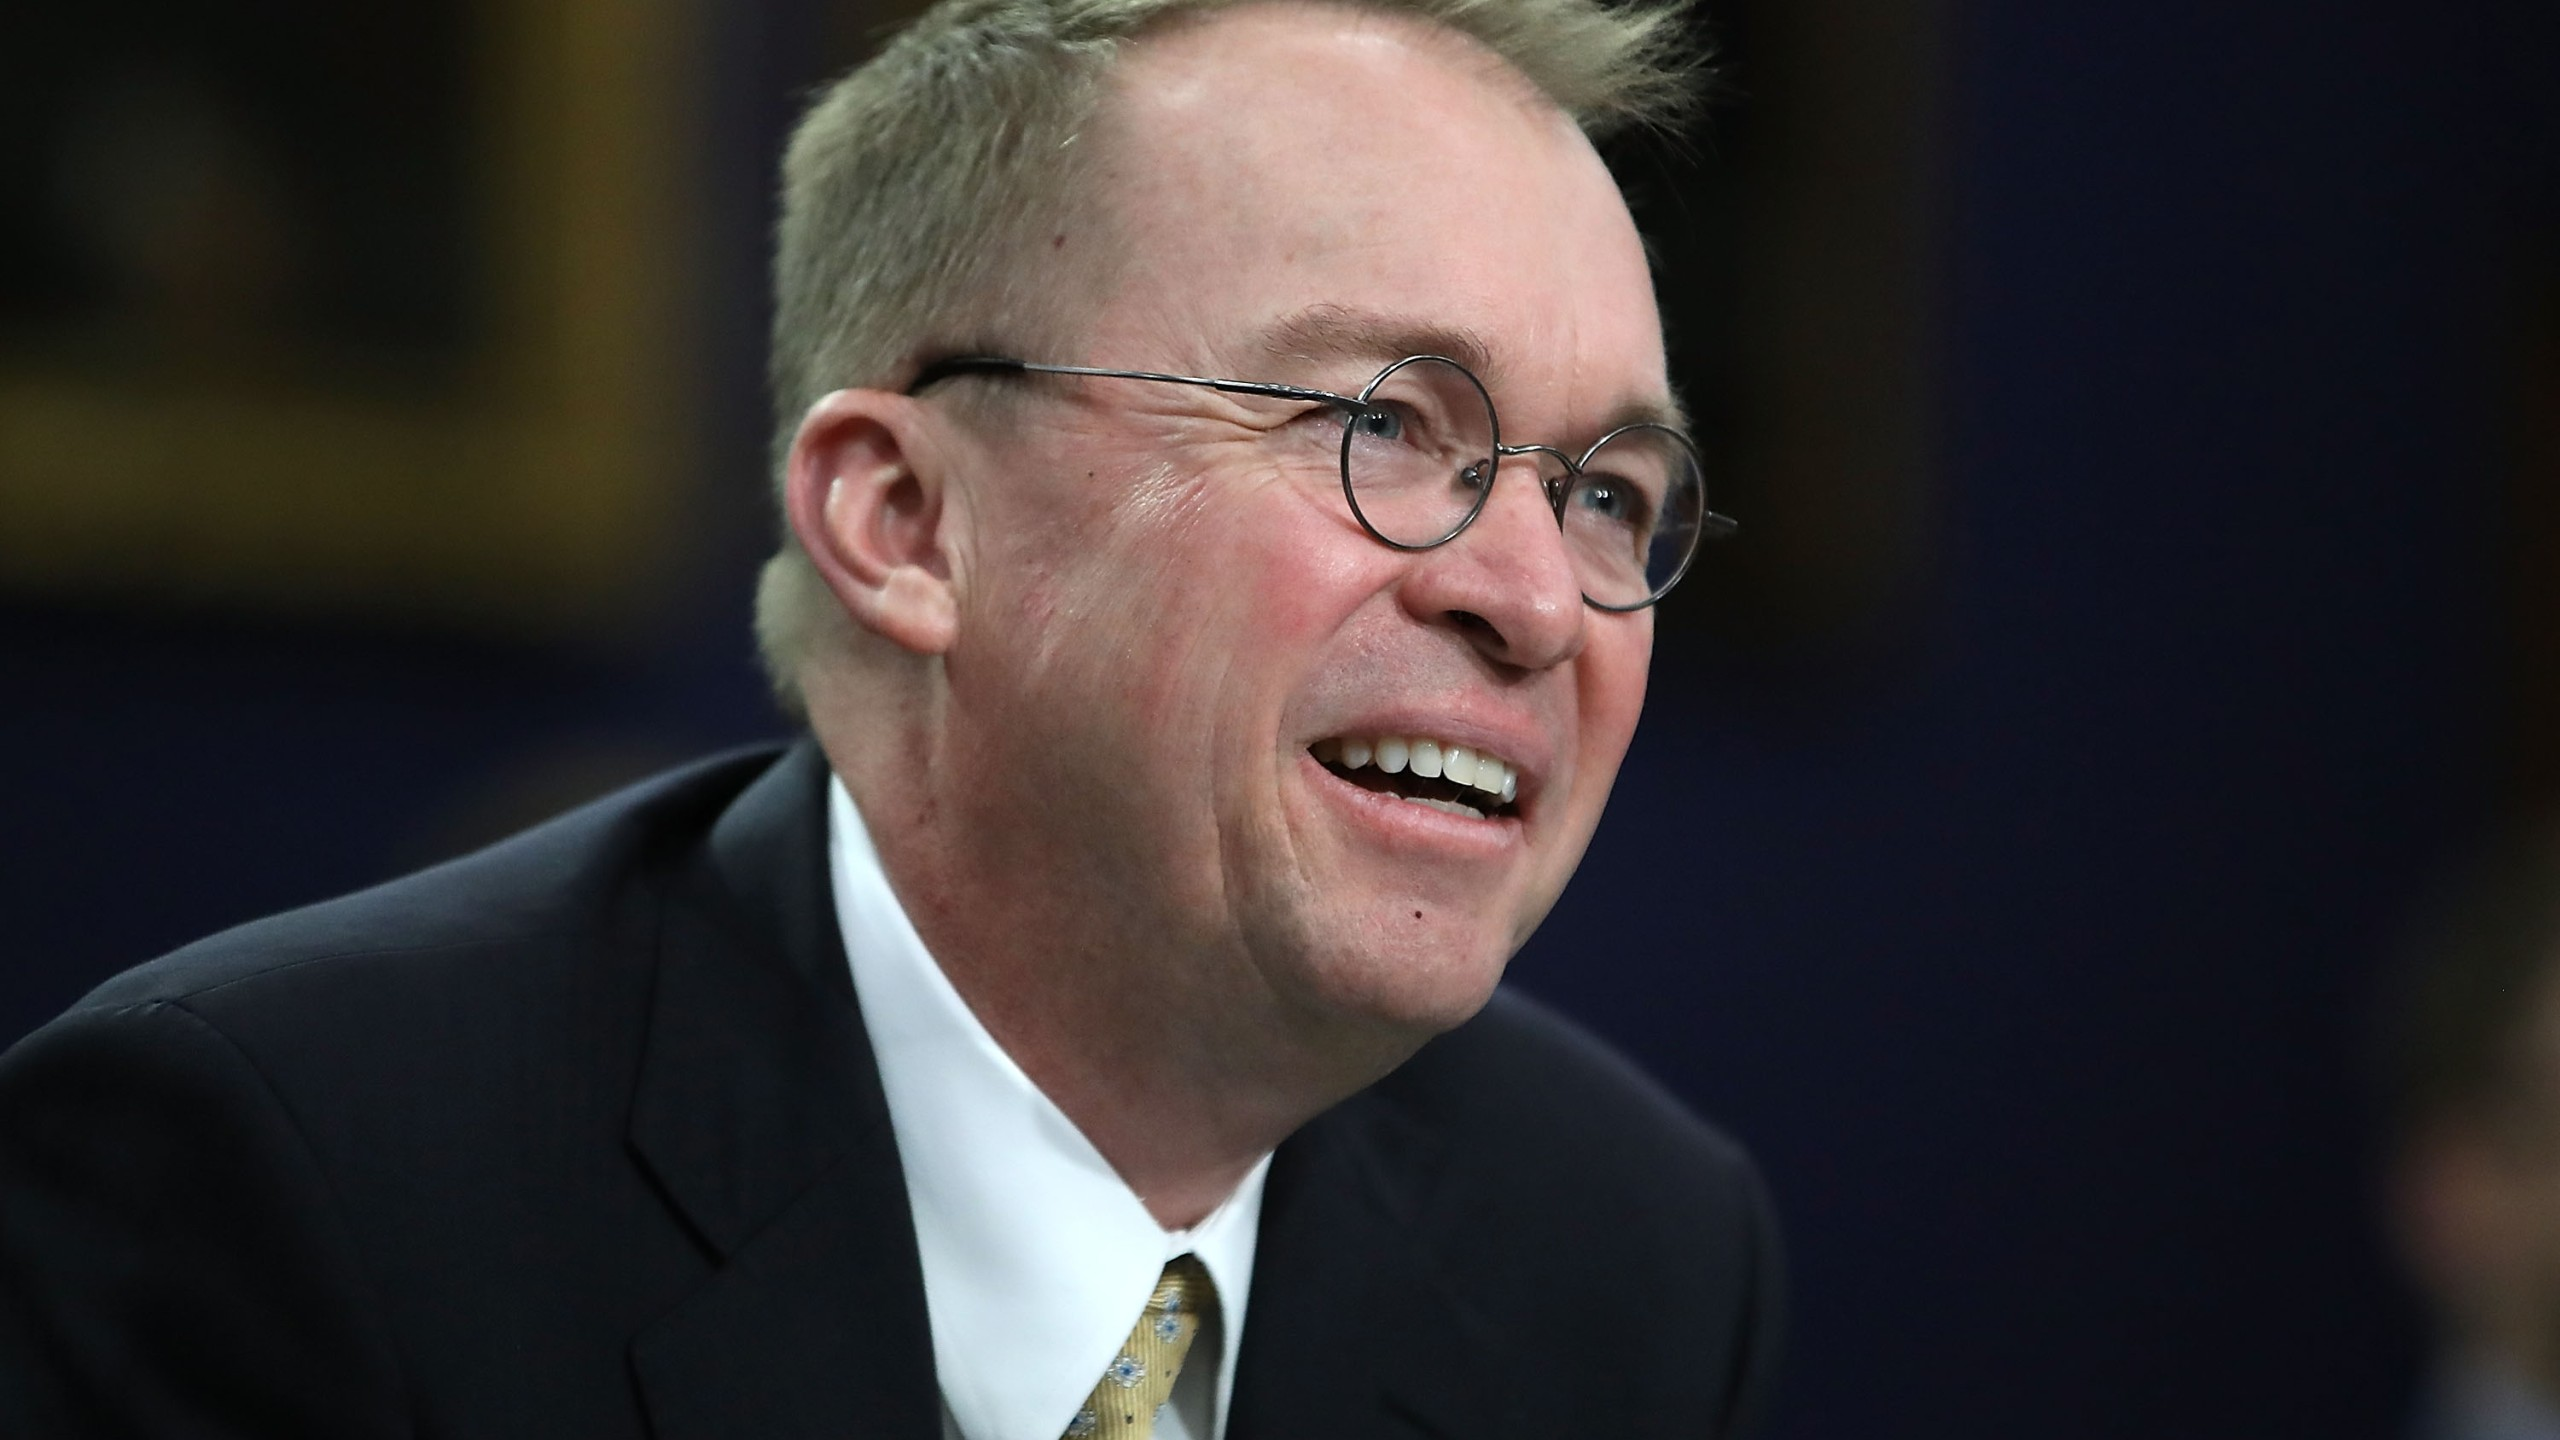 Mick Mulvaney testifies during a House Appropriations Committee hearing on Capitol Hill on April 18, 2018 in Washington, D.C. (Credit: Mark Wilson/Getty Images)